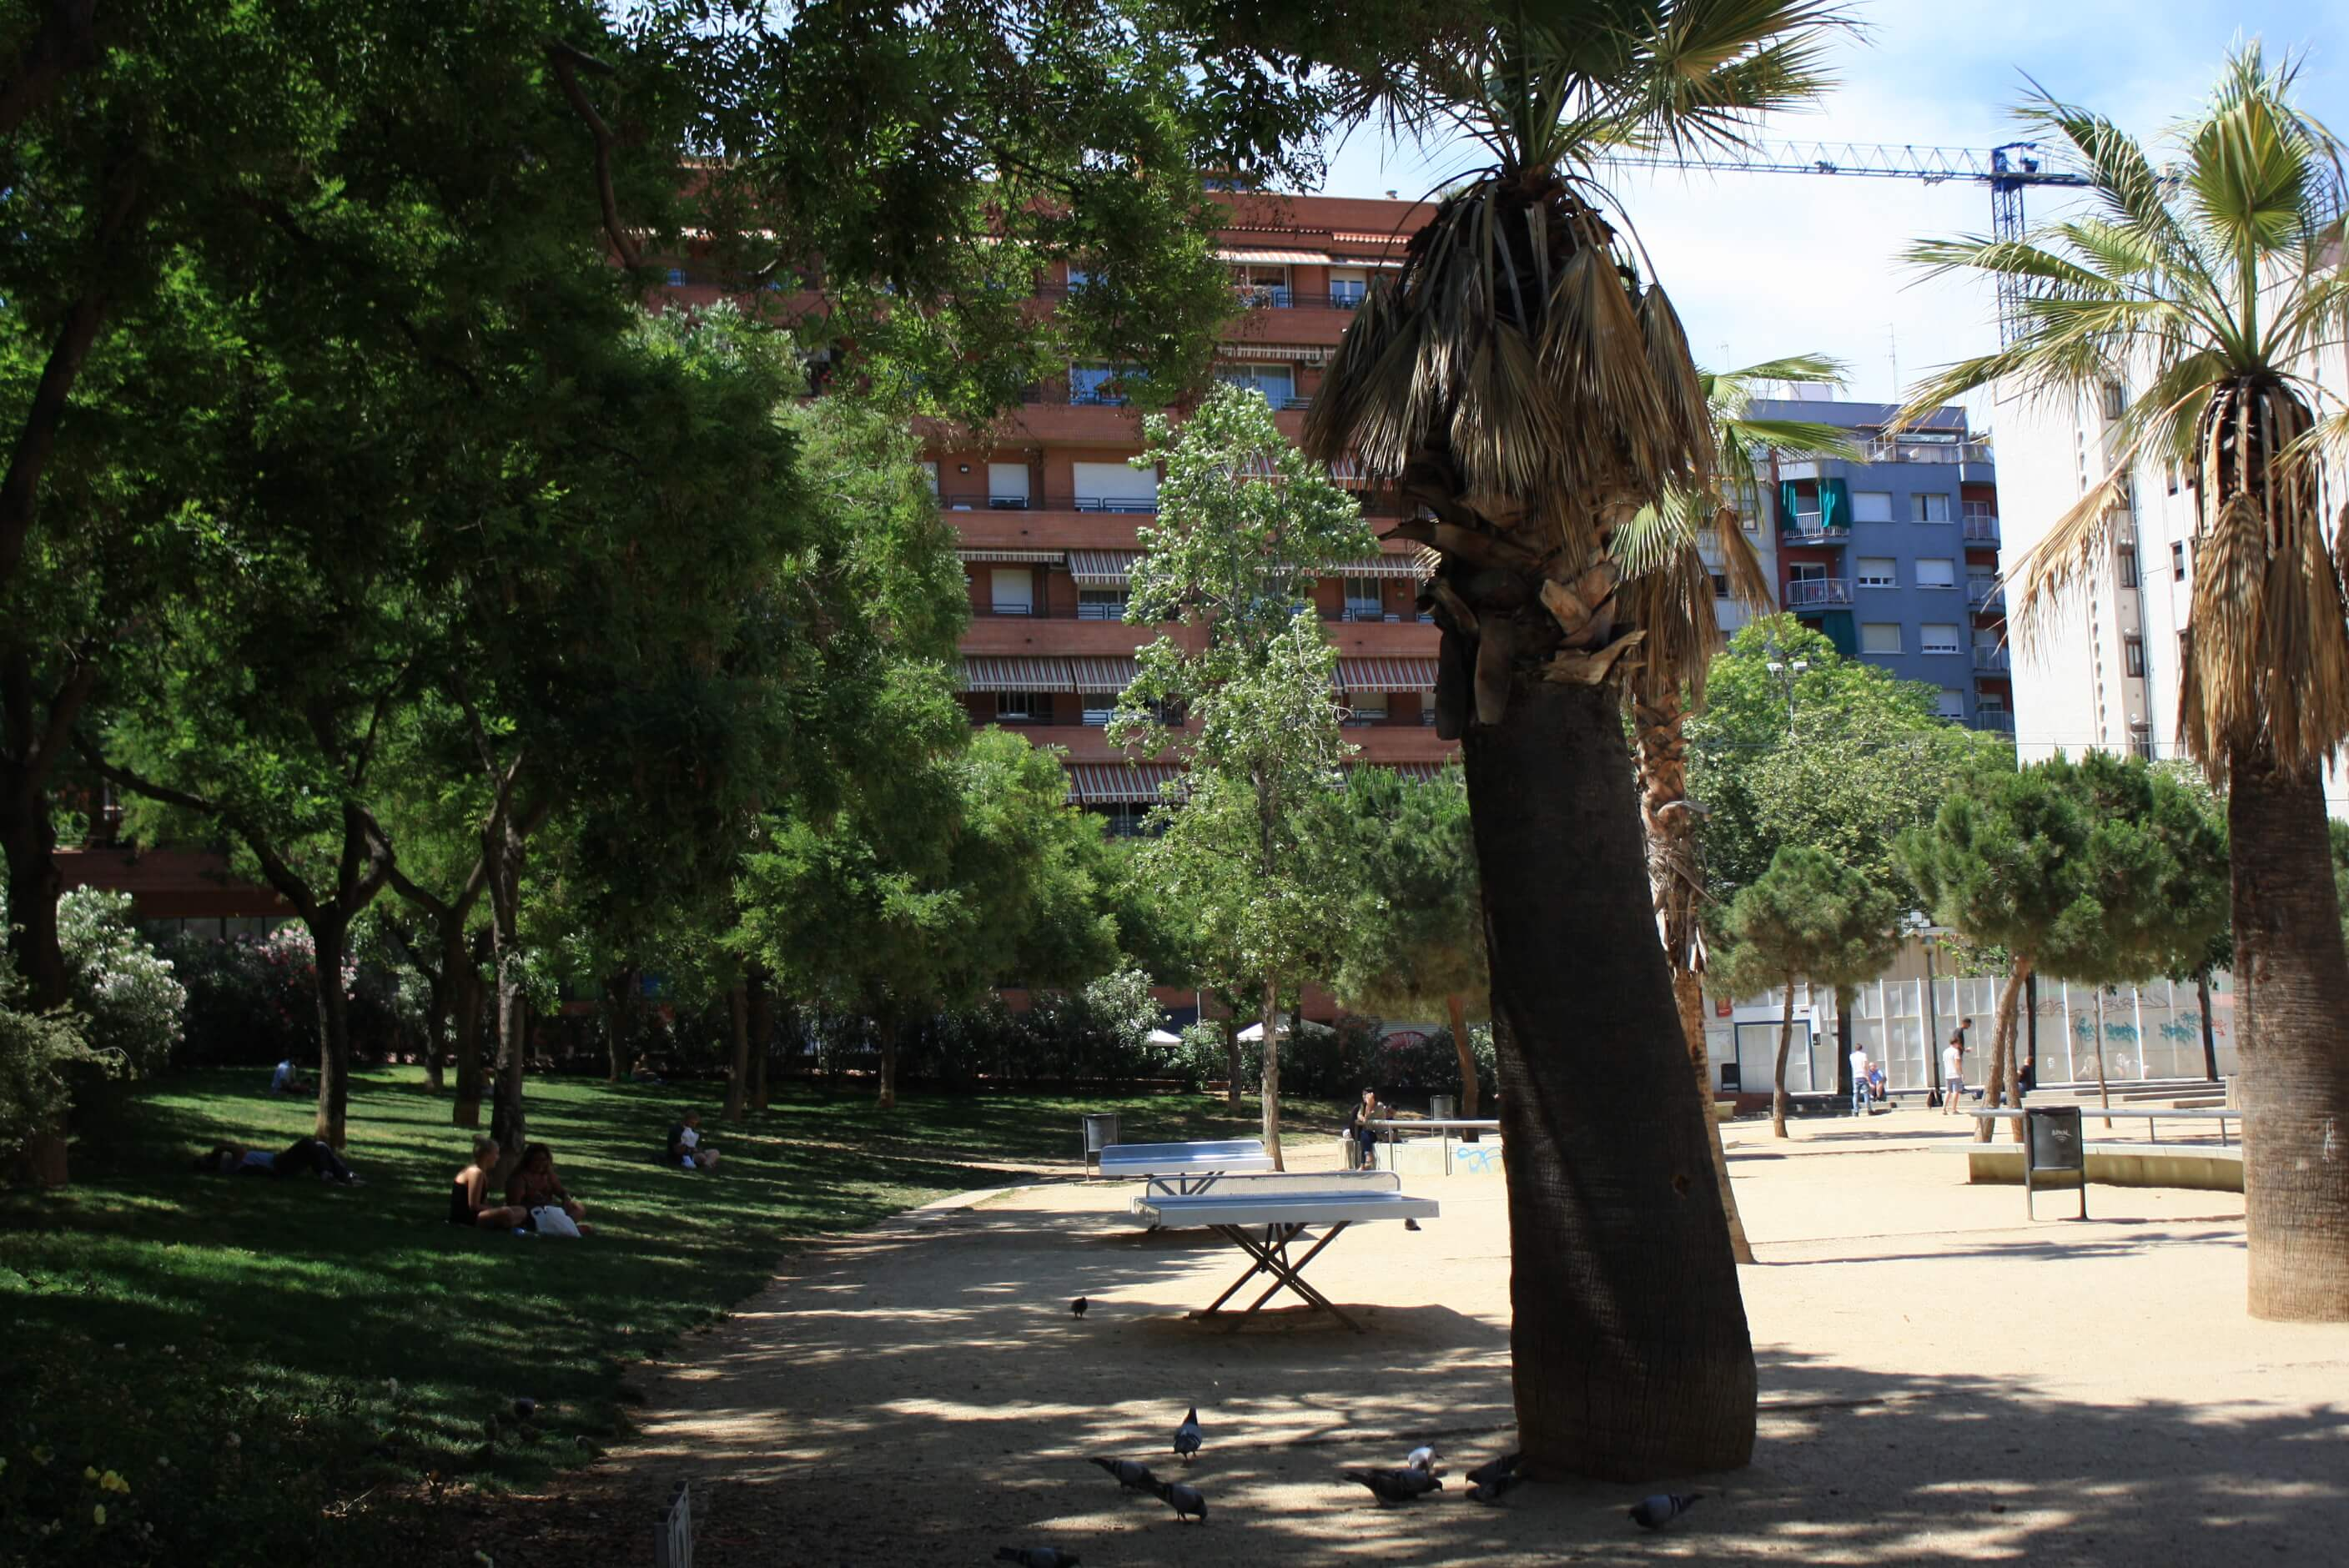 Siesta Time at the Park